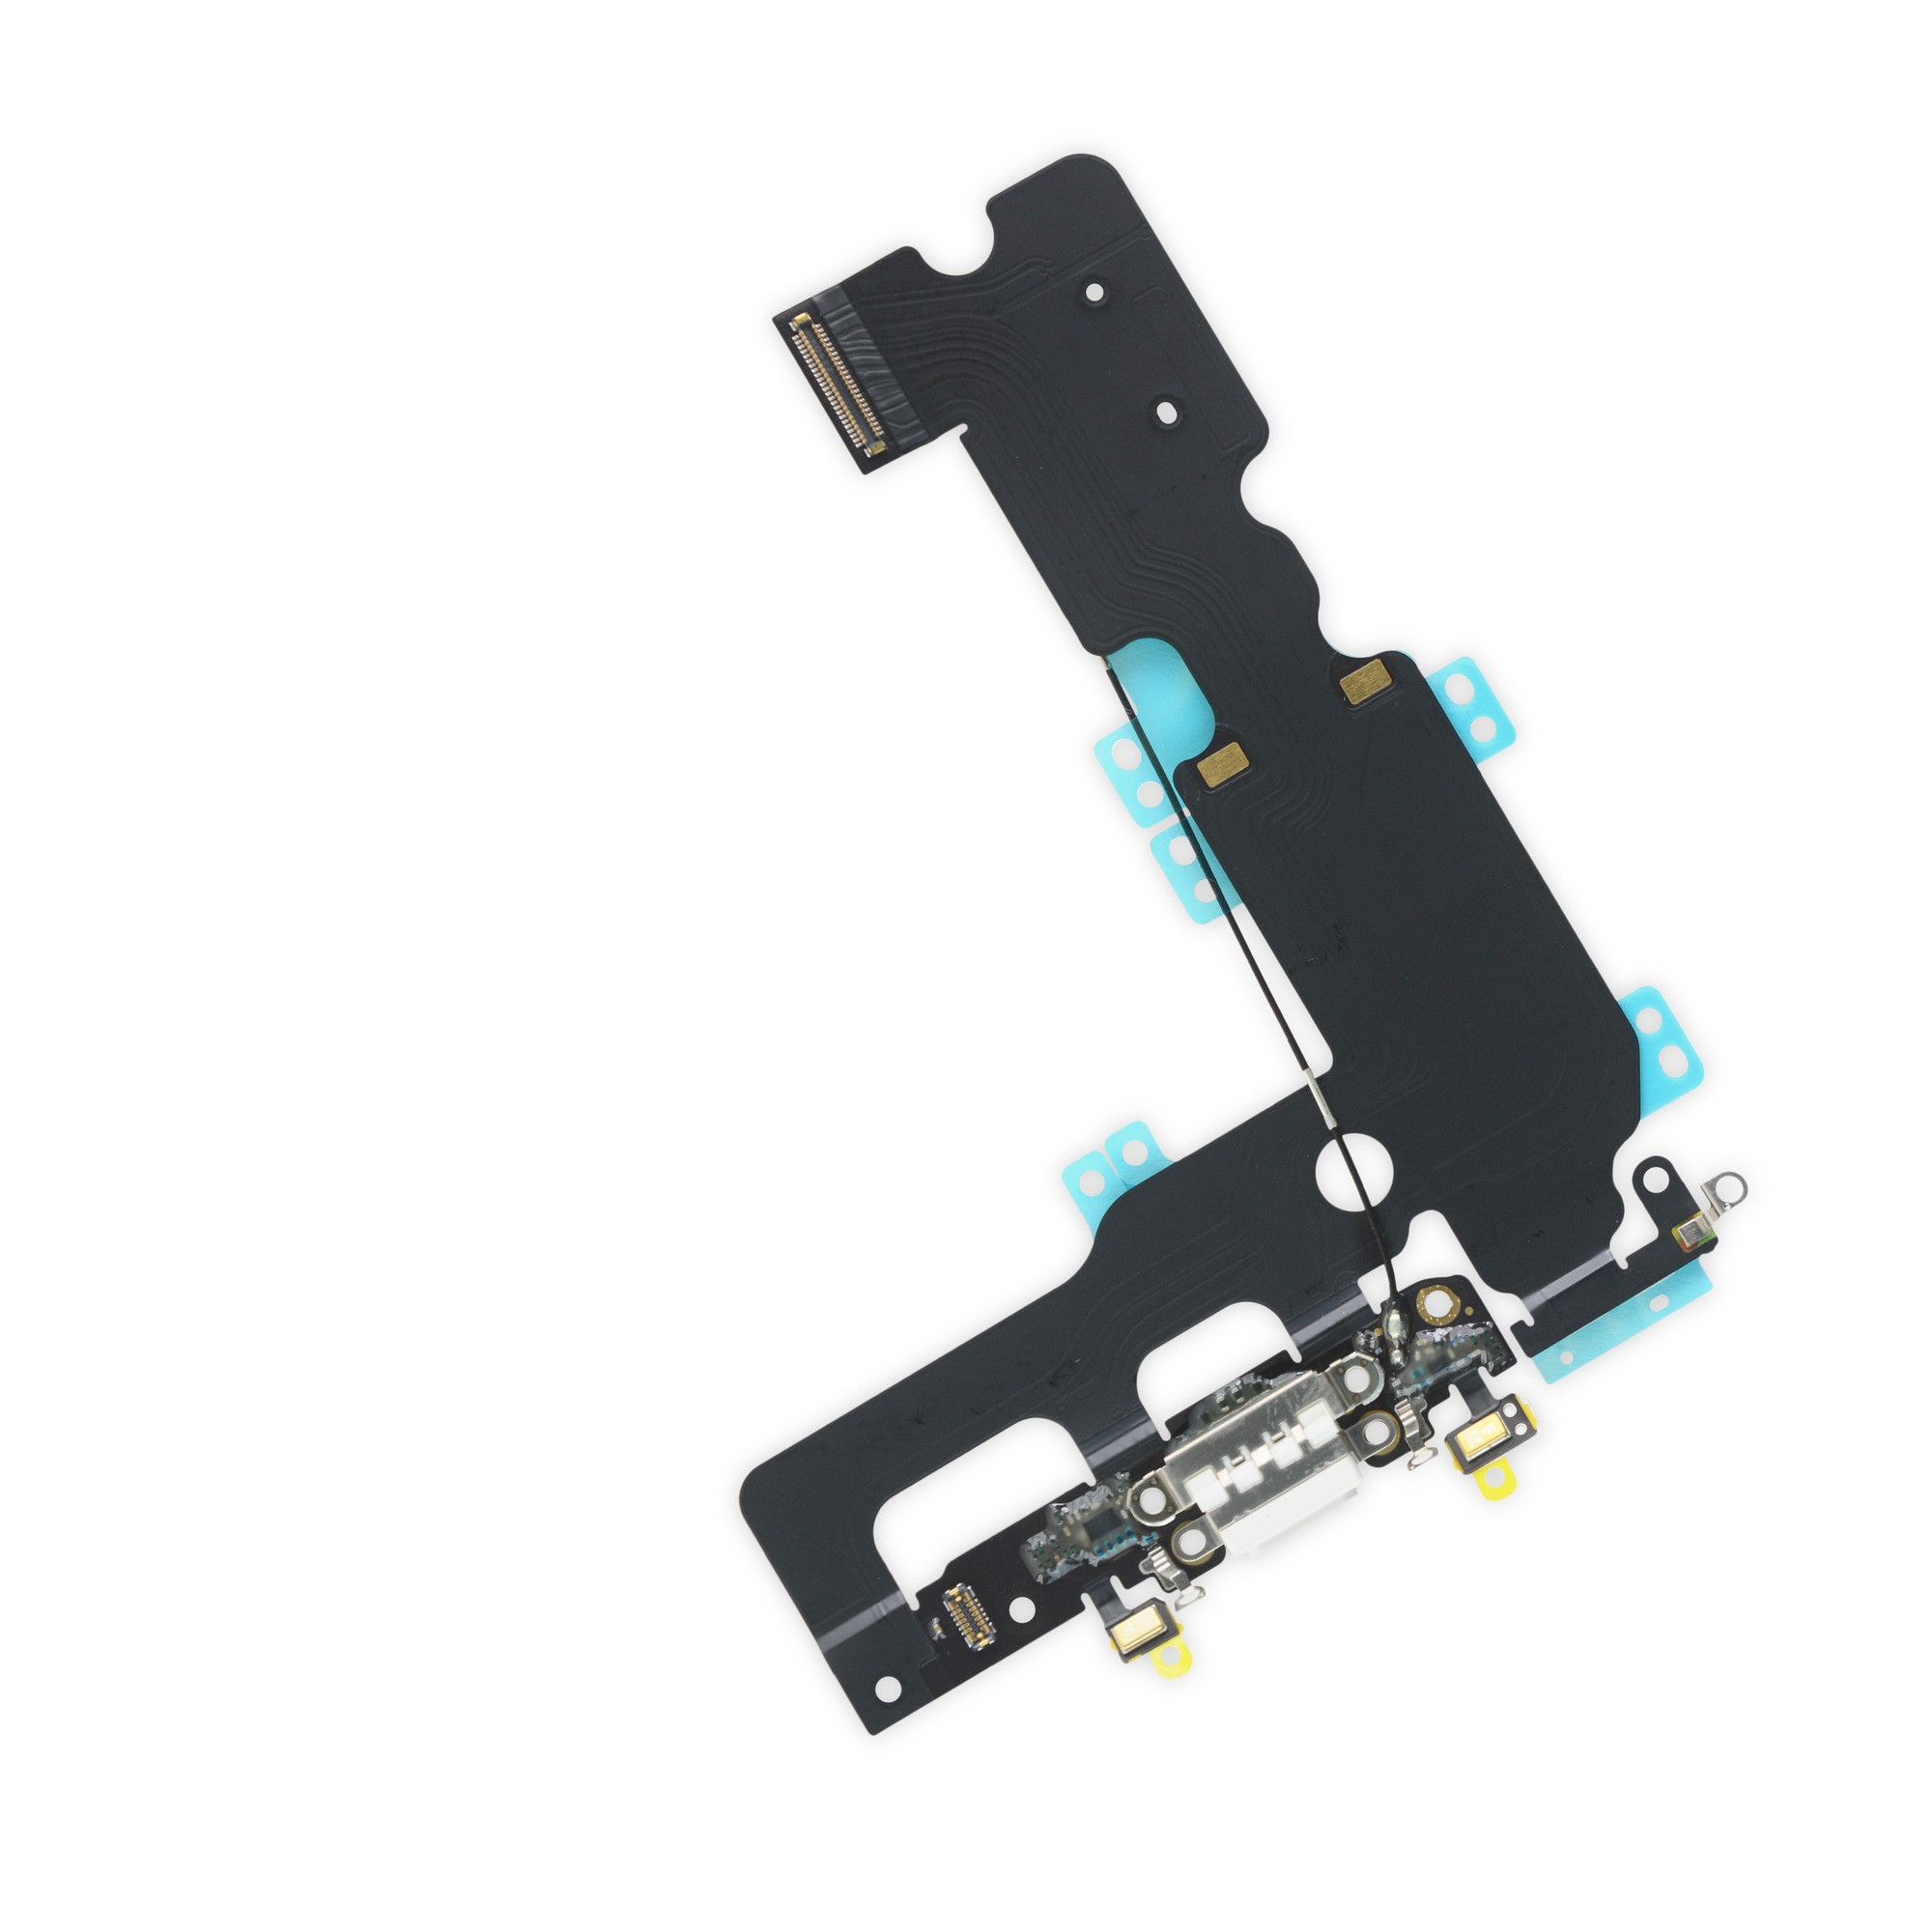 iPhone 7 Plus Lightning Connector Assembly, New, Fix Kit - White, IF333-004-5